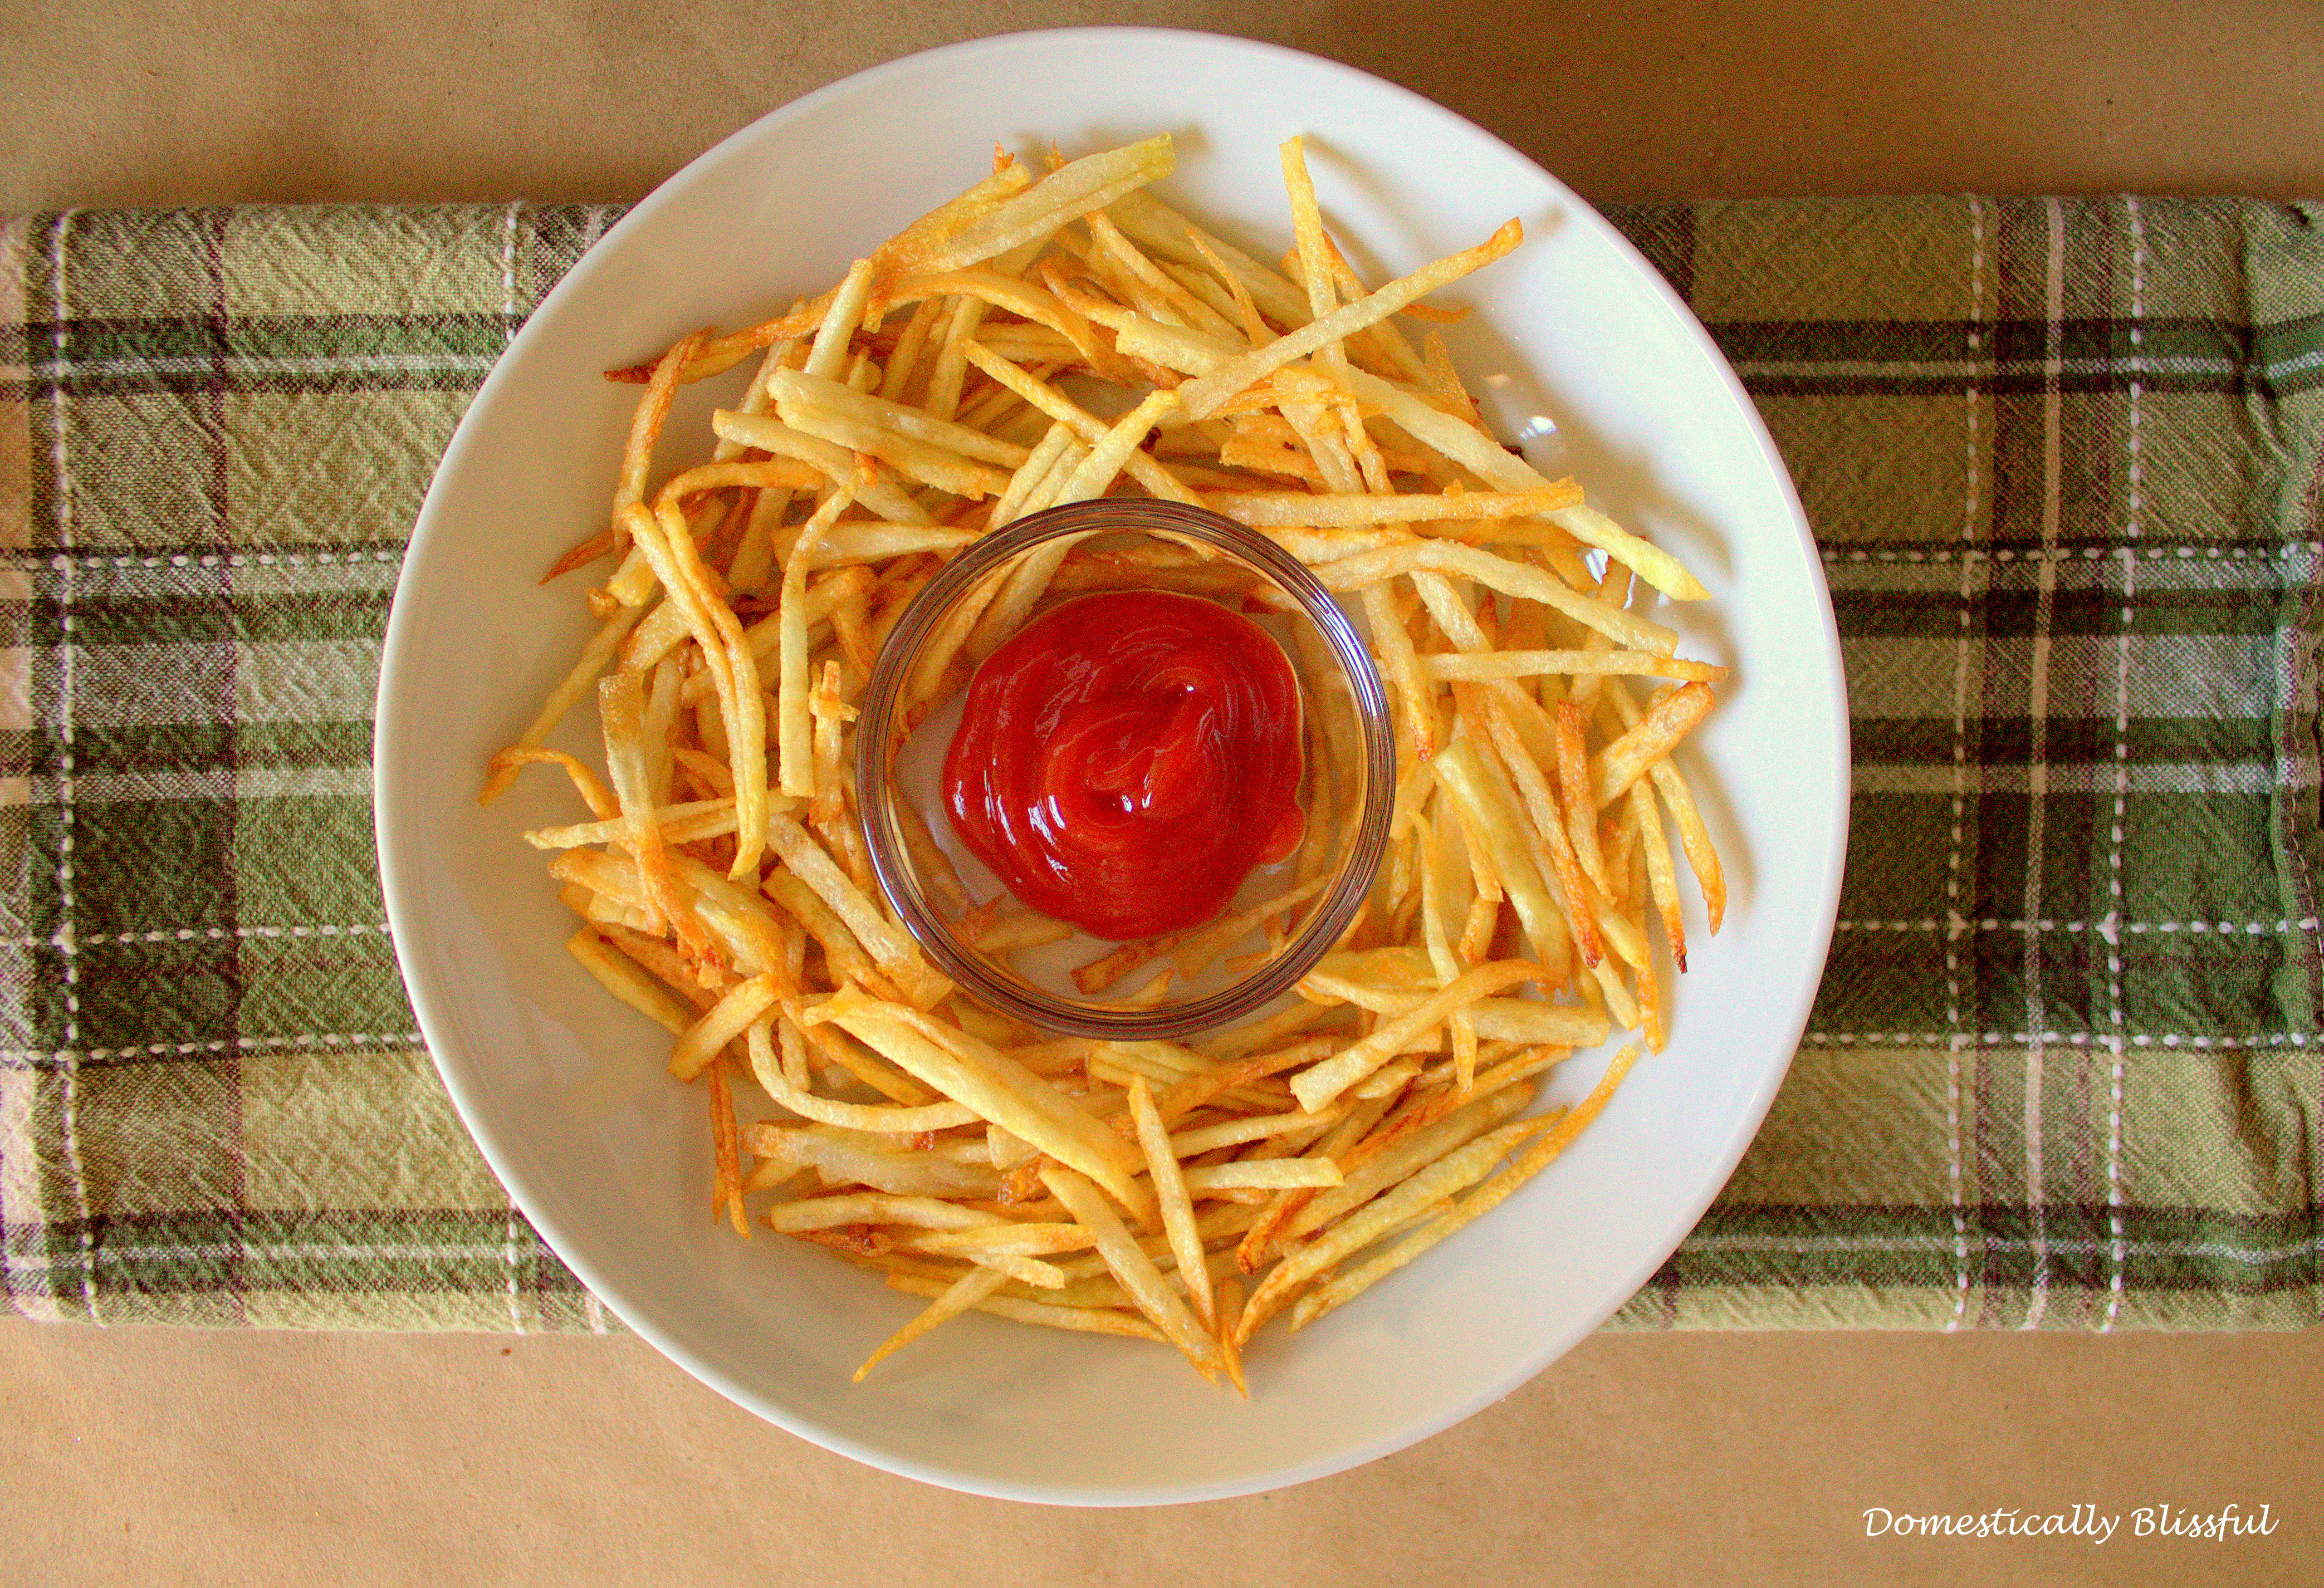 how to keep french fries crispy